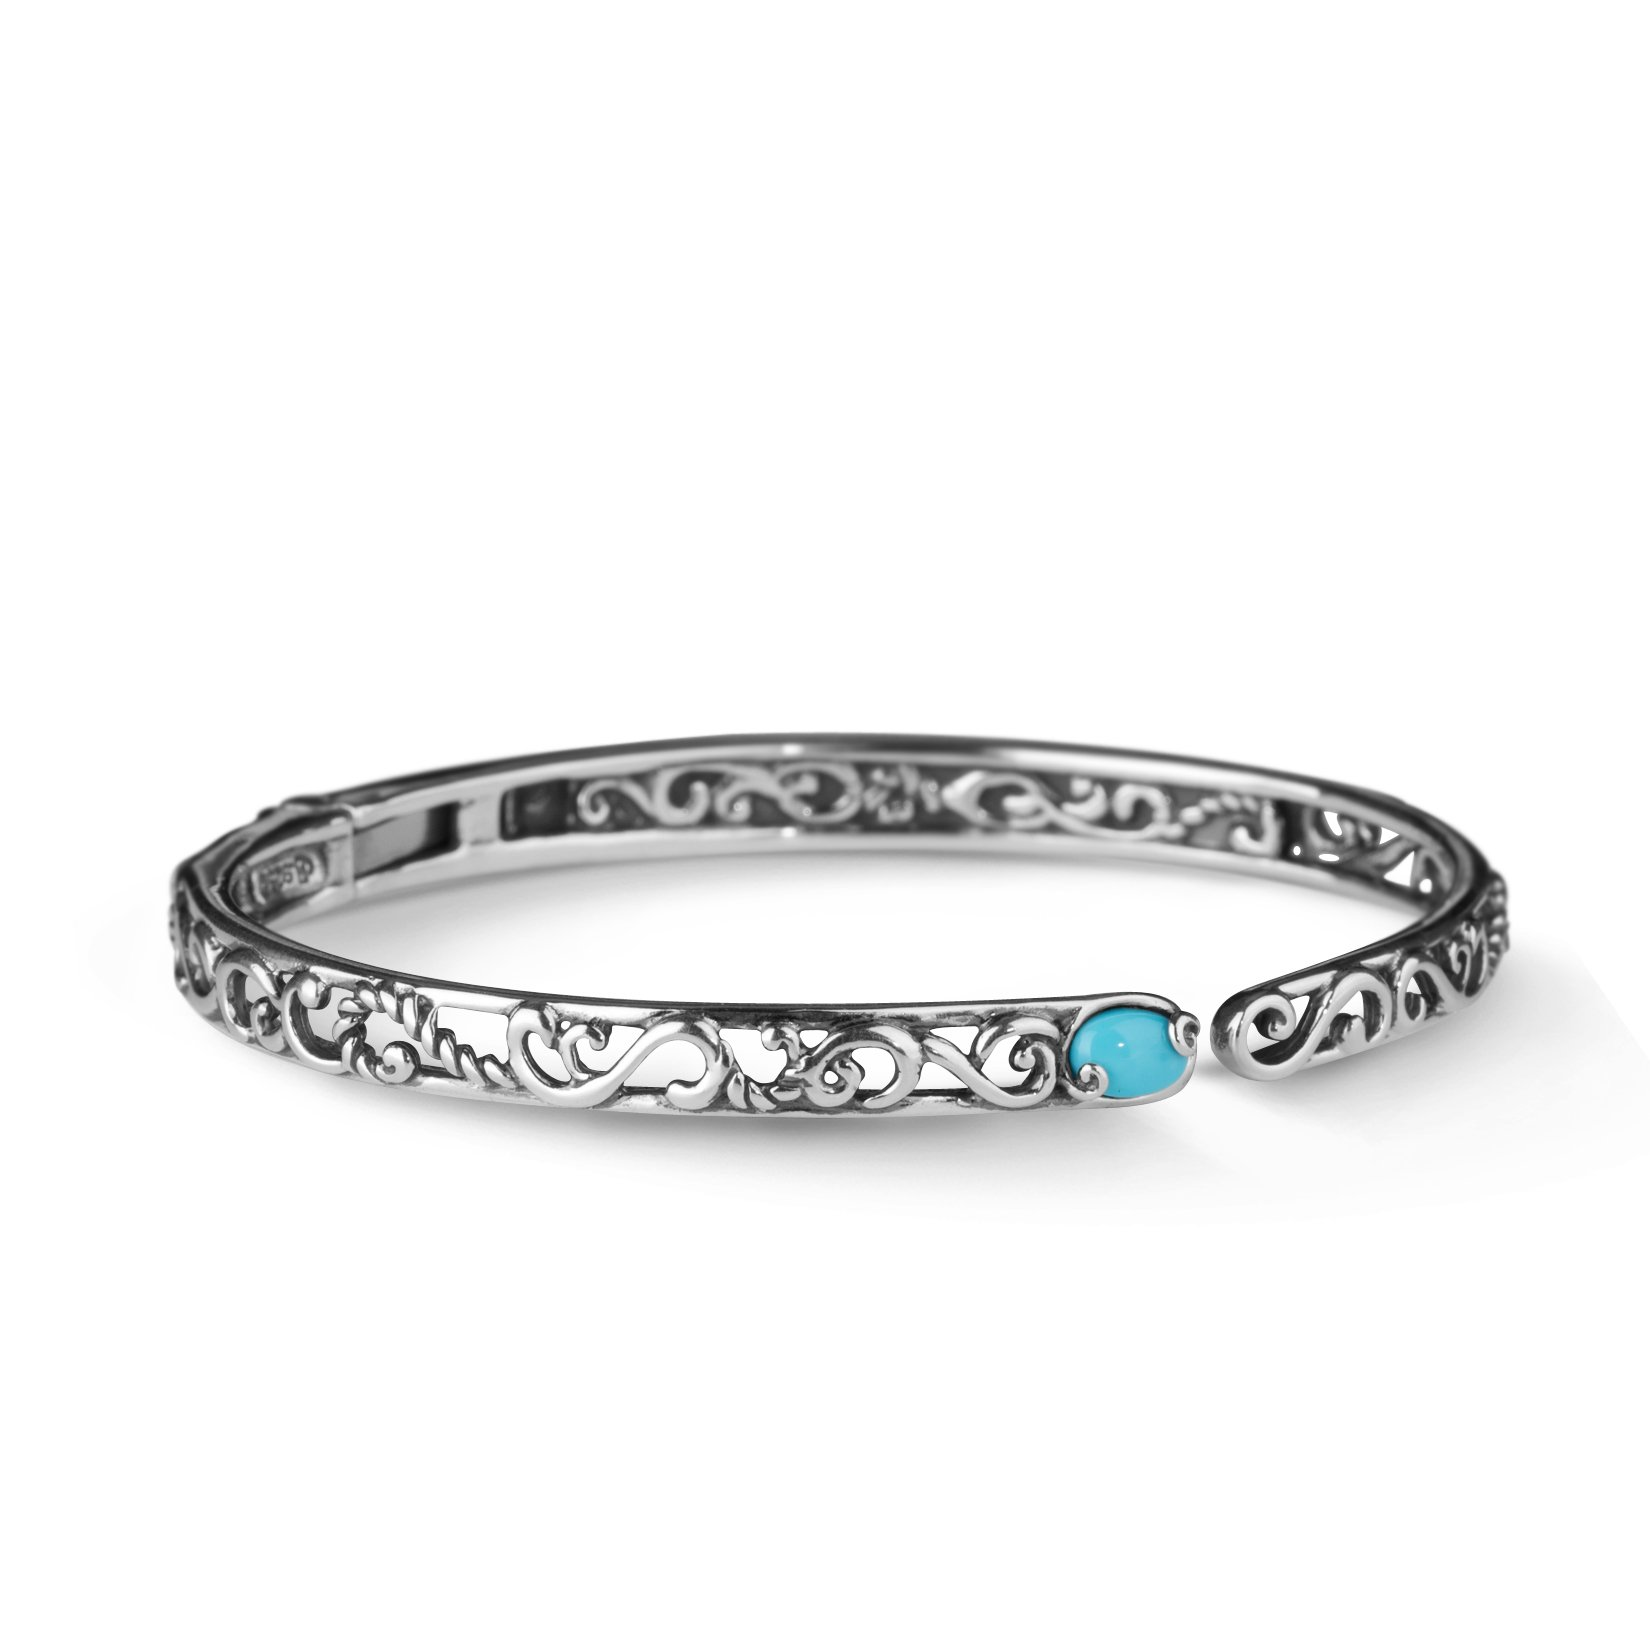 CP Signature Sleeping Beauty Turquoise Hinged Cuff Bracelet